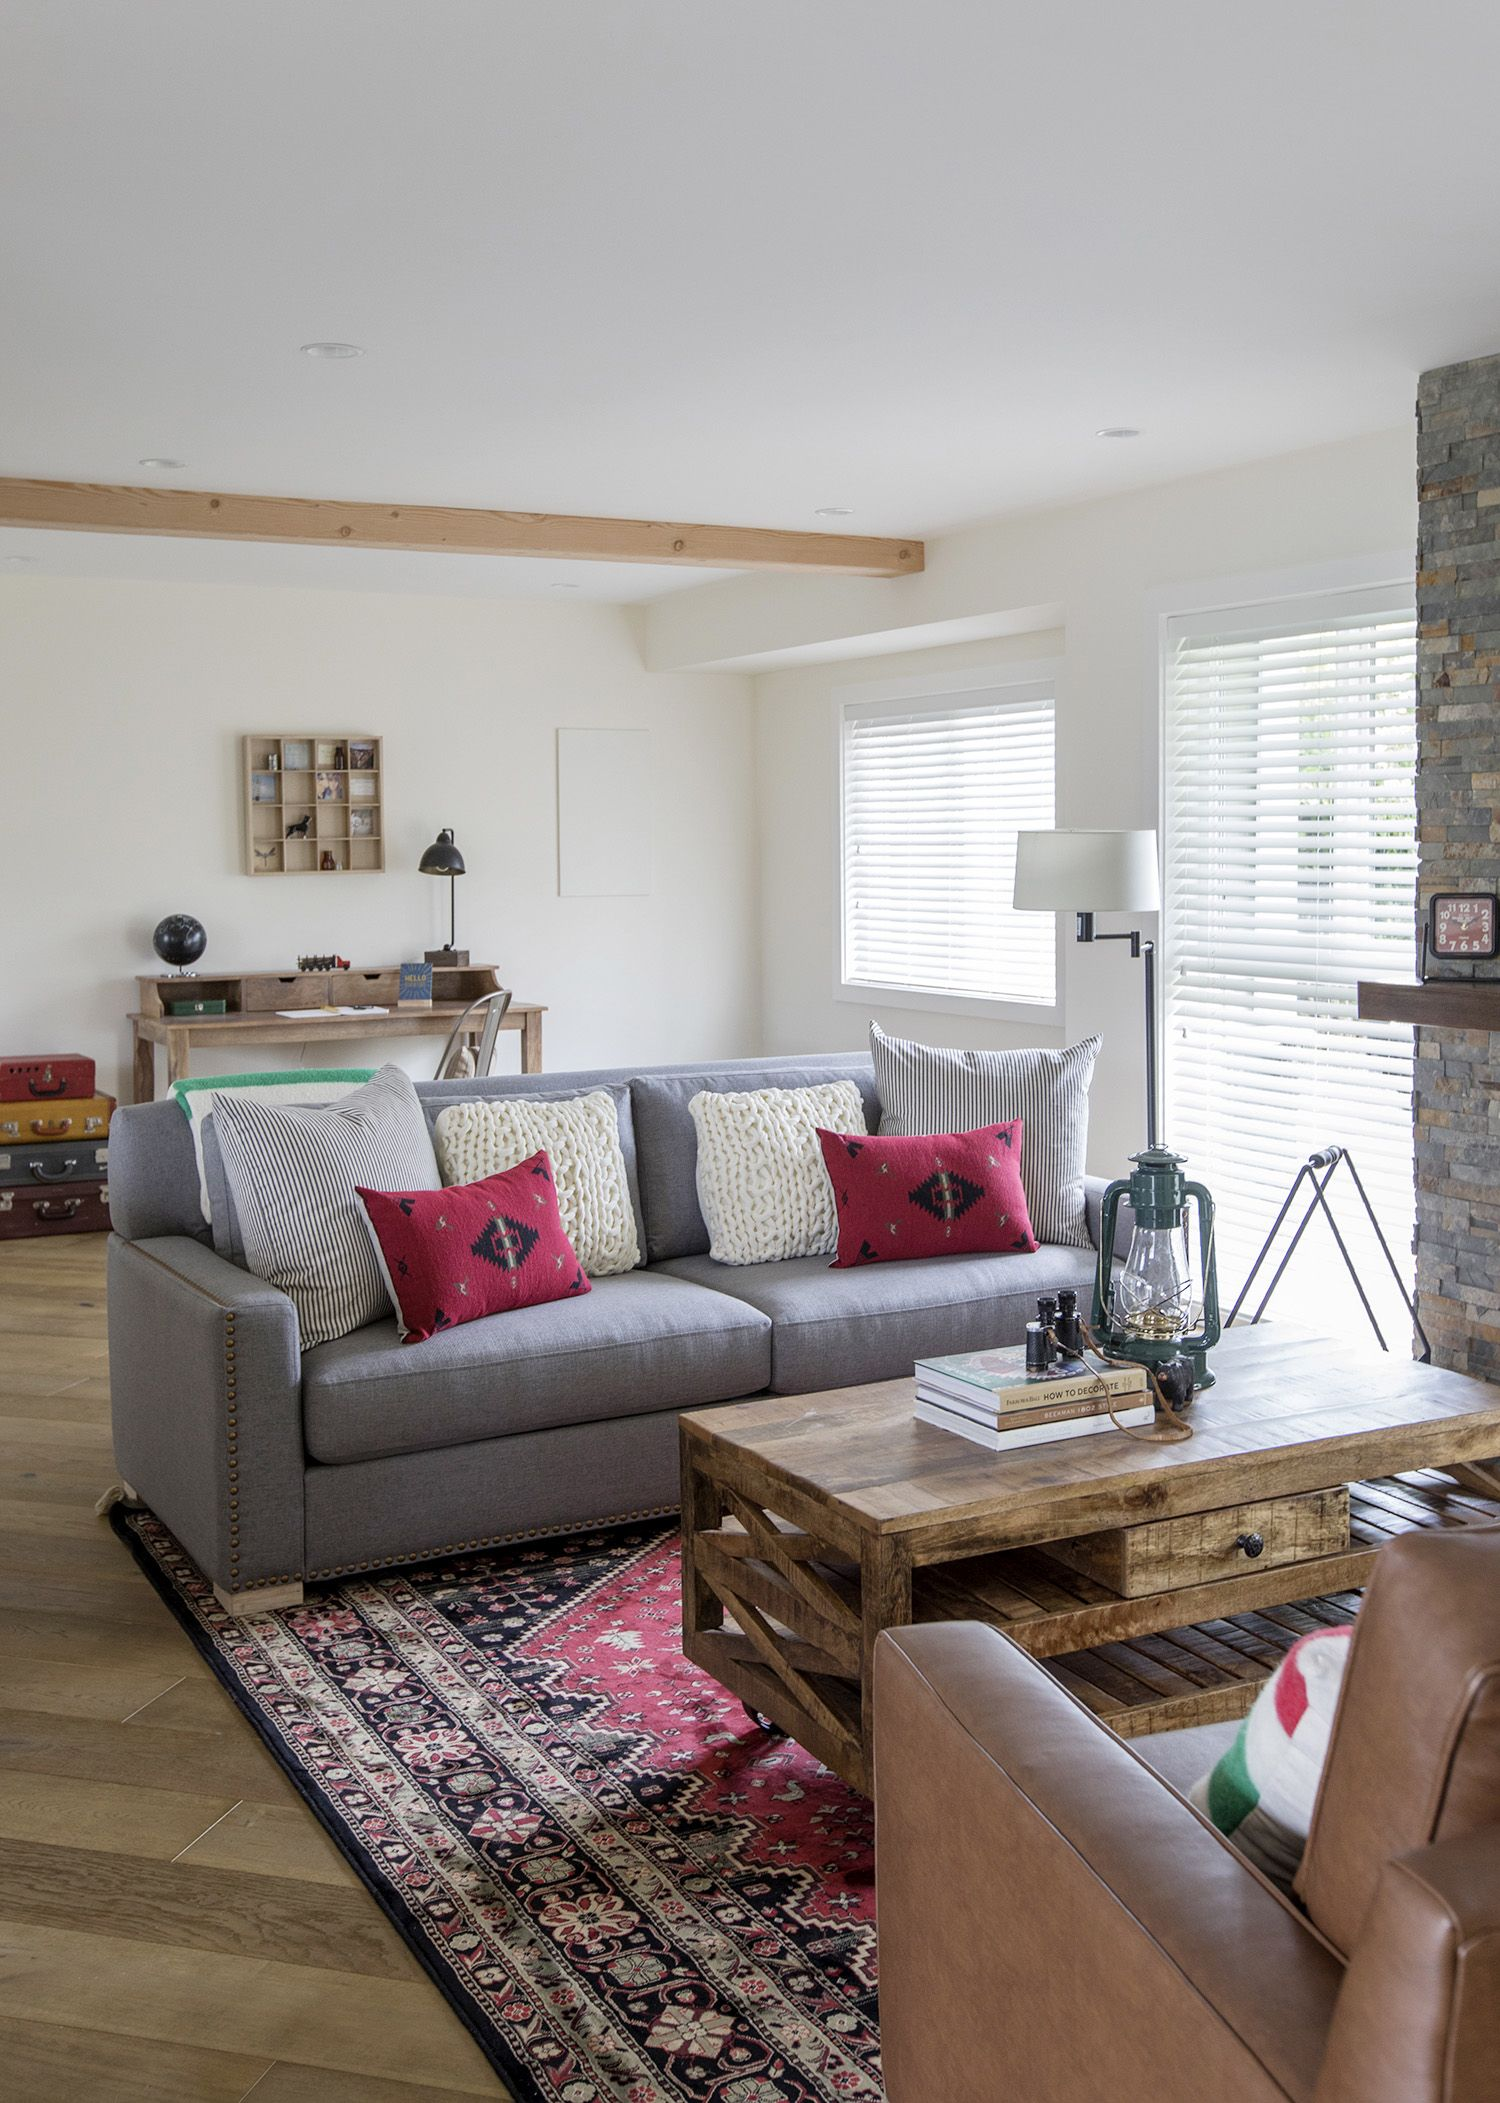 See Inside a Suburban Home With a Cottage Concept | Rustic interiors ...